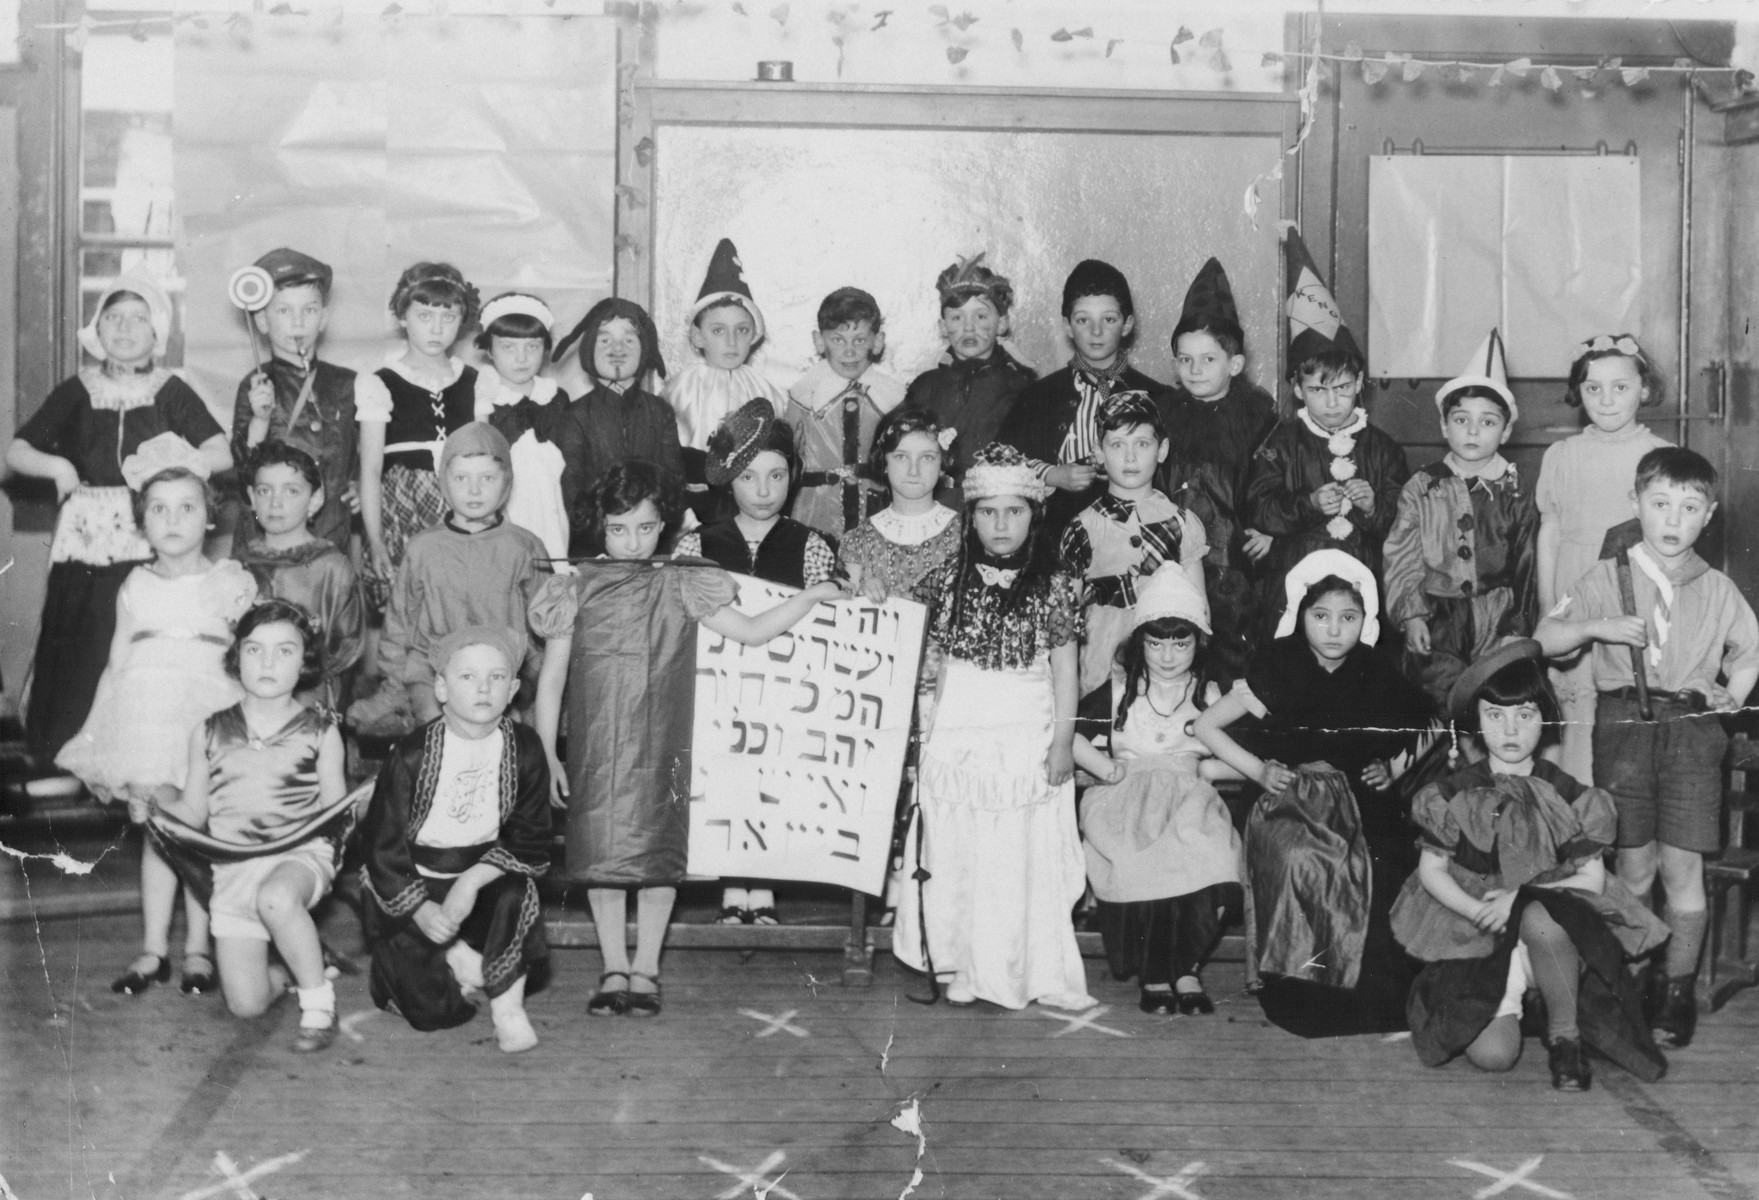 Group portrait of children in a Jewish school in Amsterdam dressed in Purim costumes.  Among those pictured is Maurice Raynor (top row, sixth from the right).